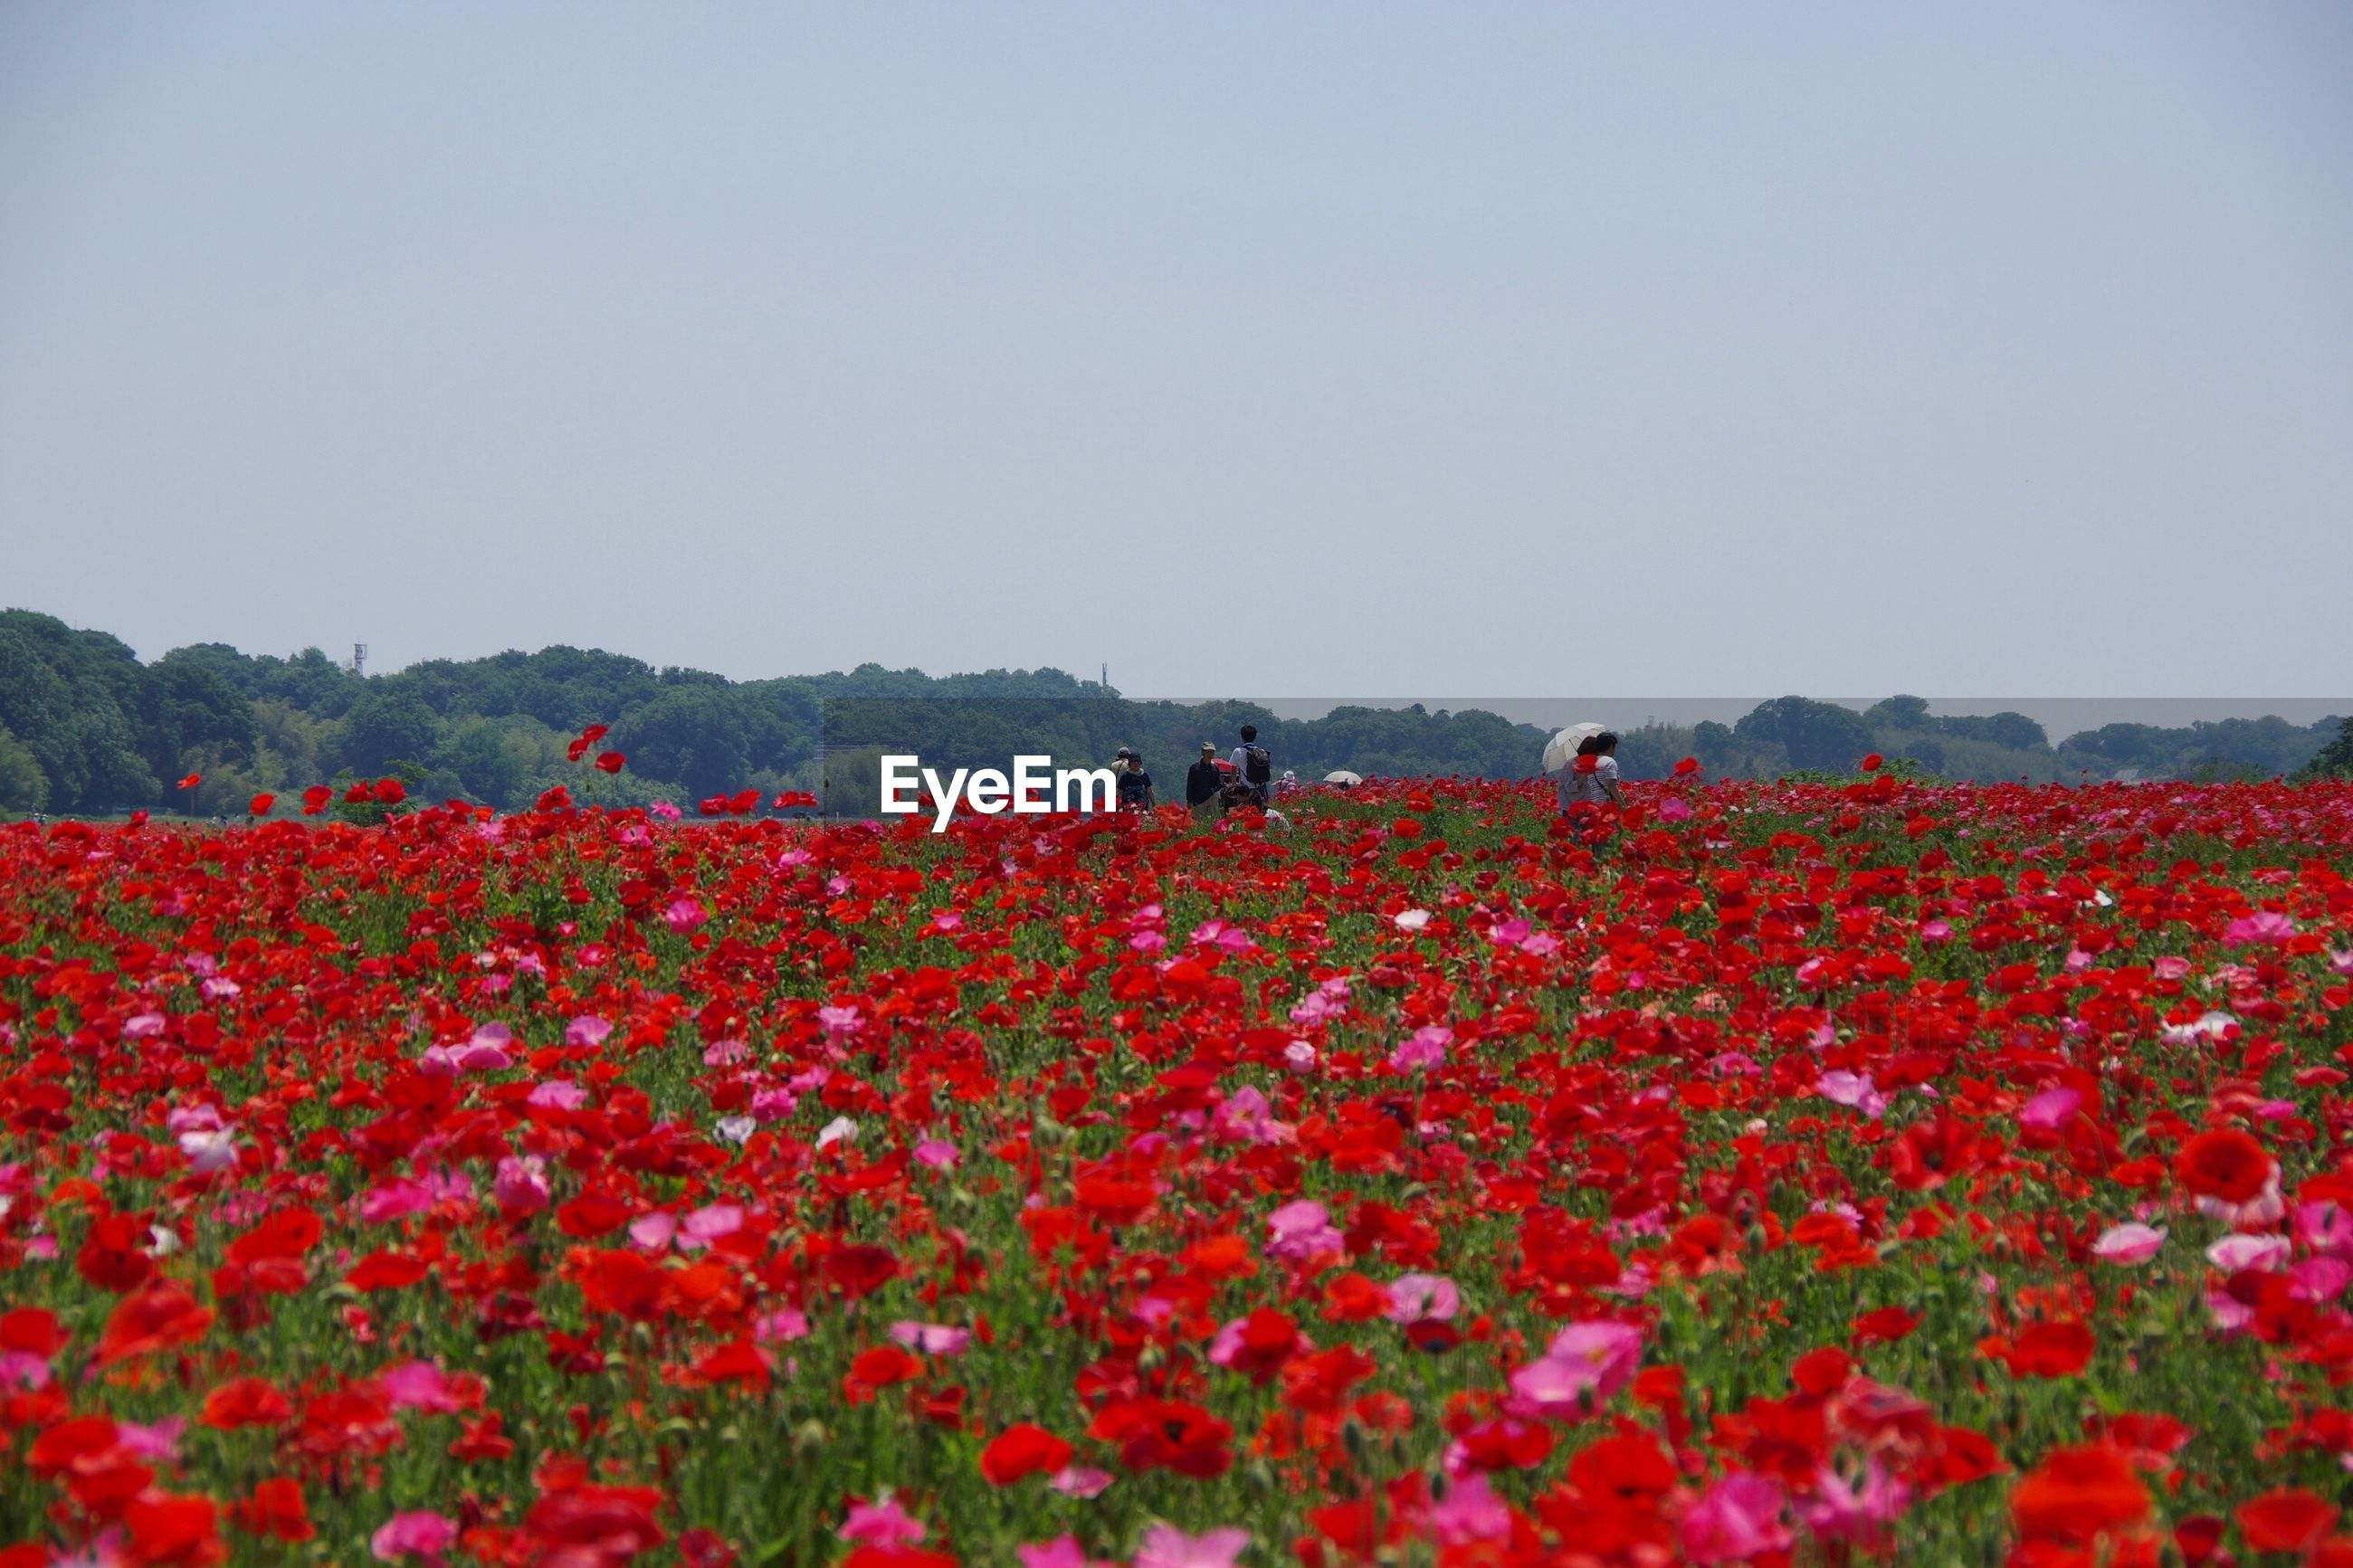 People on red poppies farm against clear sky